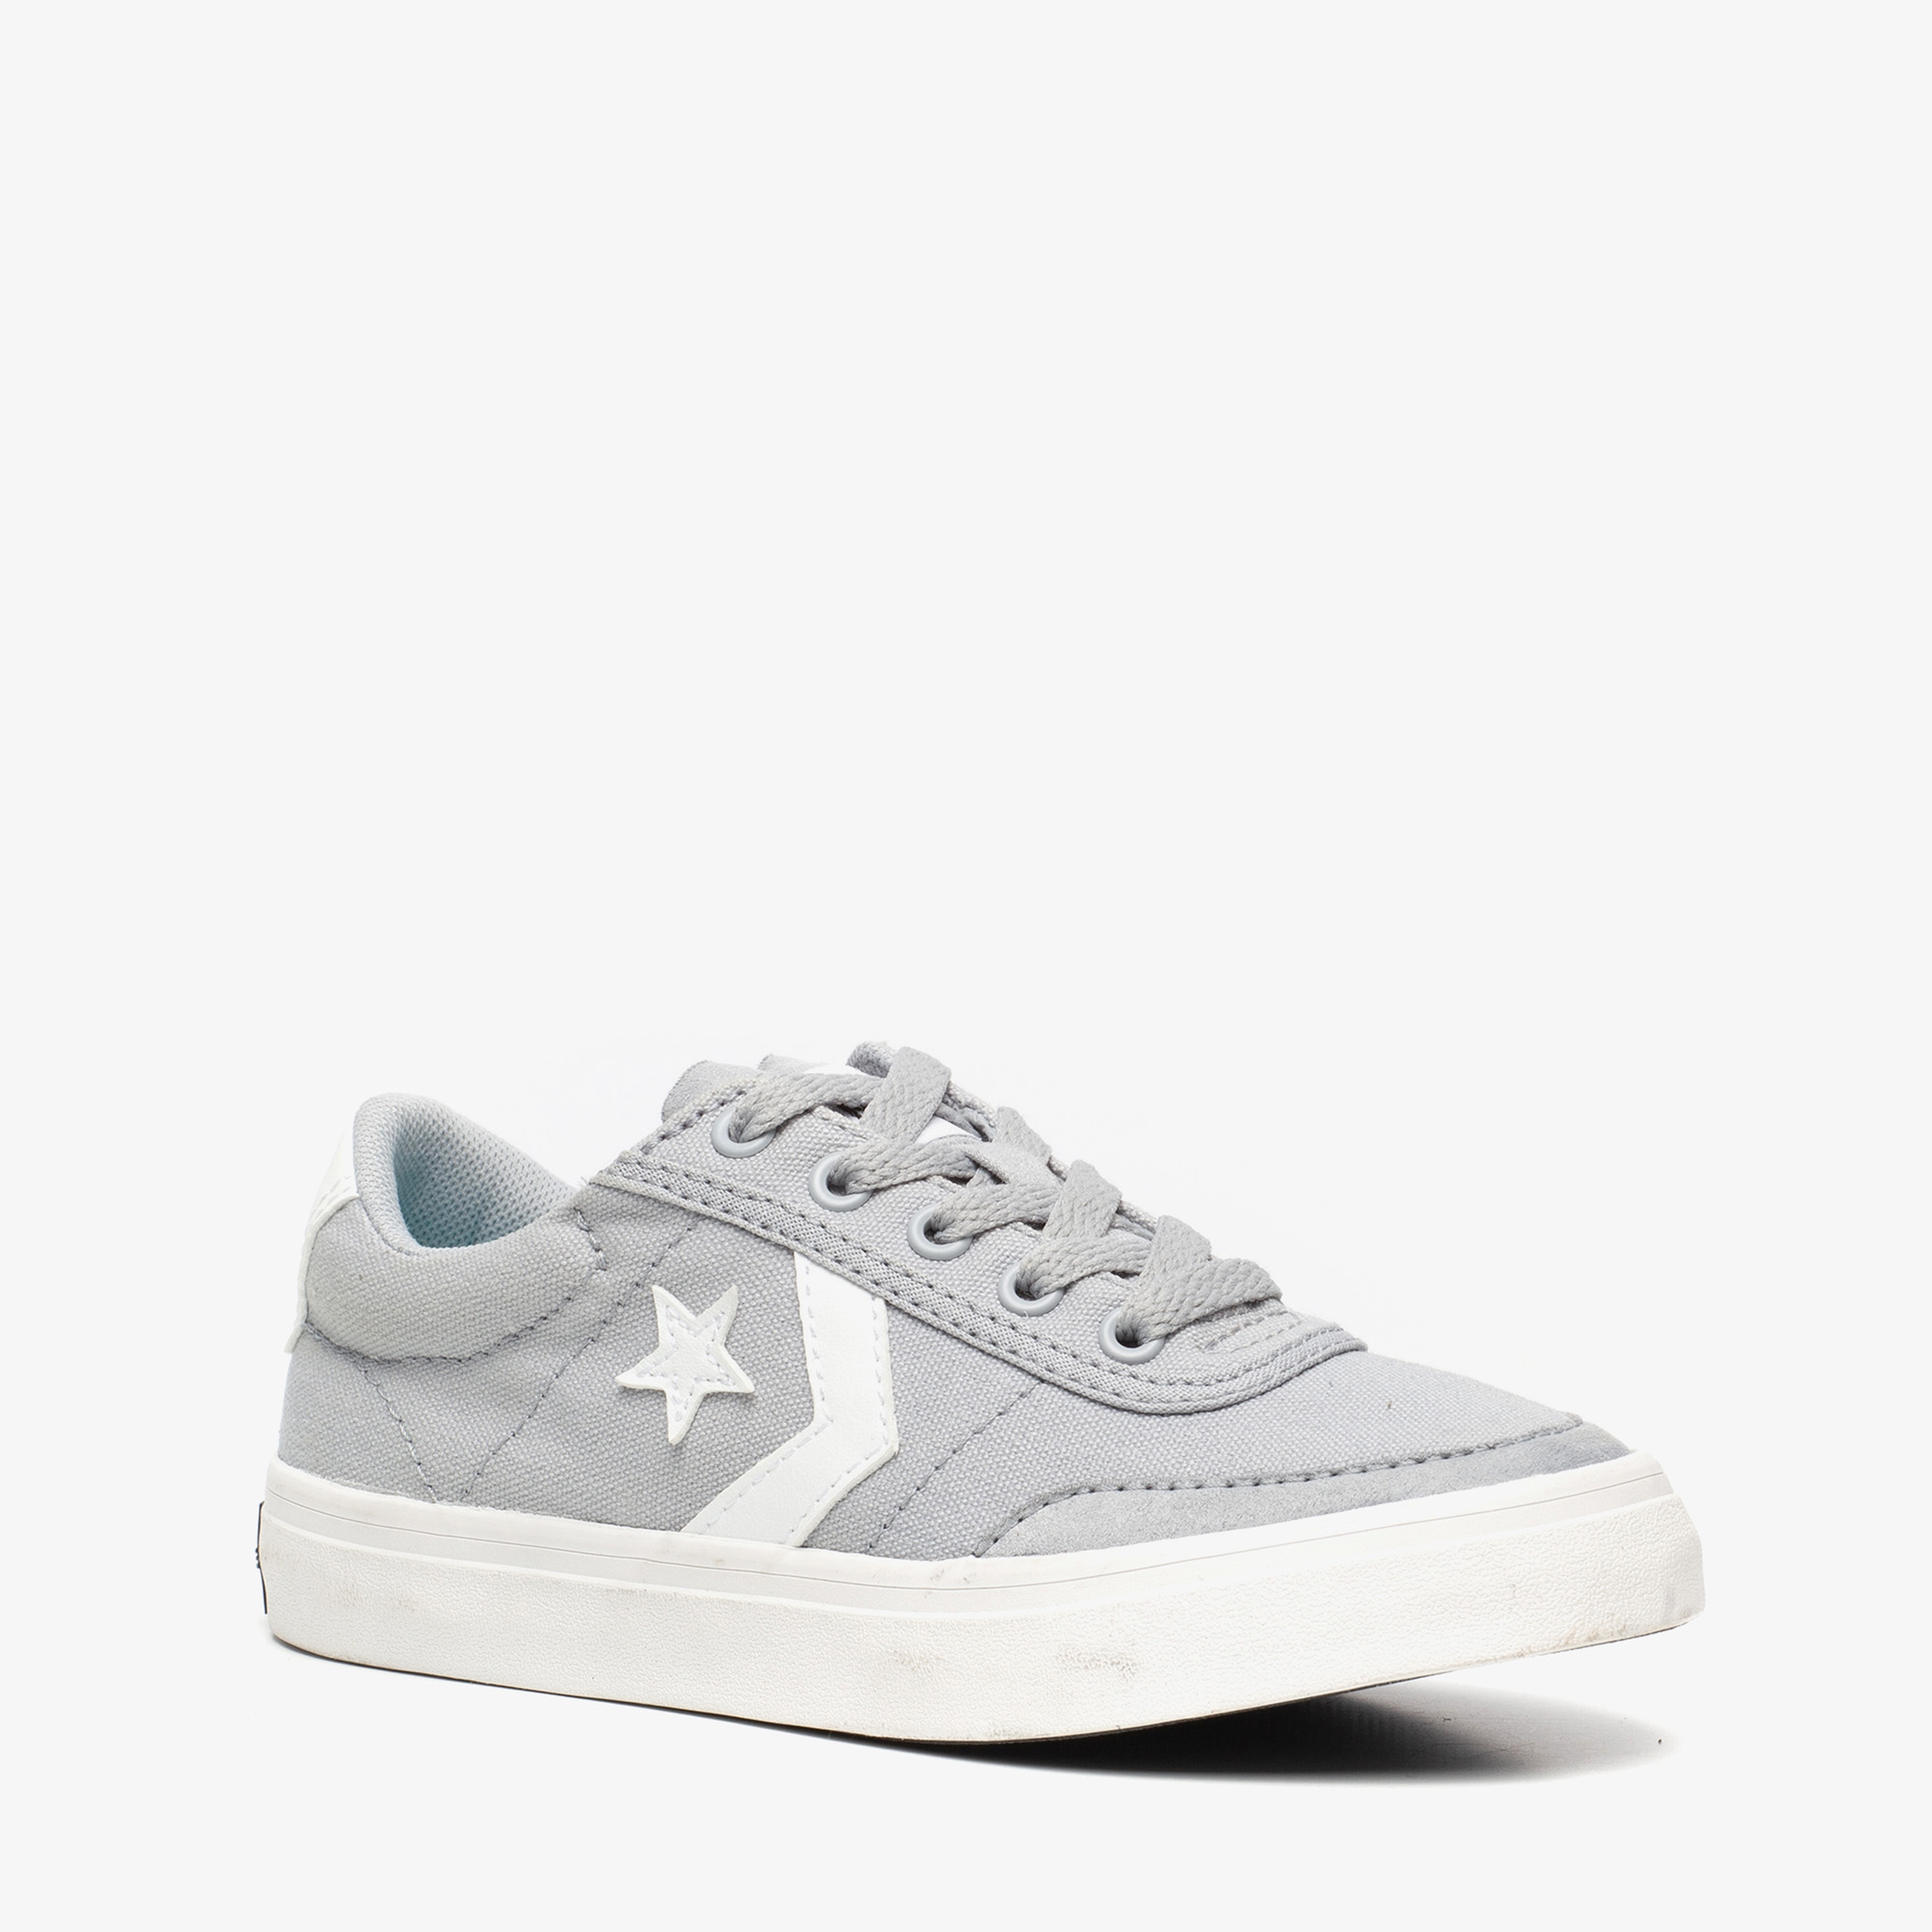 Converse Courtland kinder sneakers | Scapino.nl